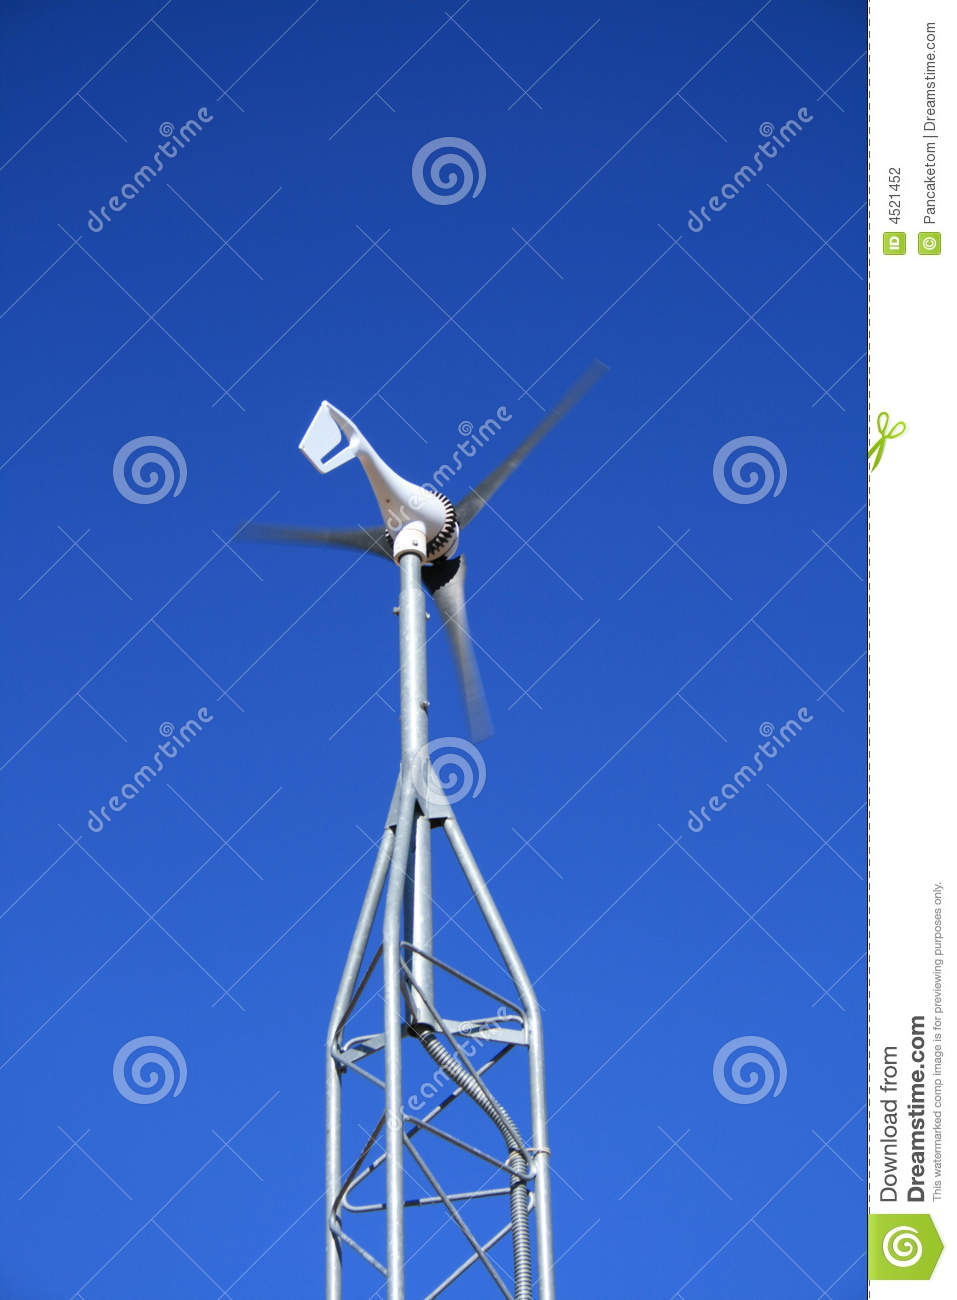 windmill electricity Windmill energy :: a renewable source of energy that provides clean, non-polluting electricity without polluting the air or generating greenhouse gases.